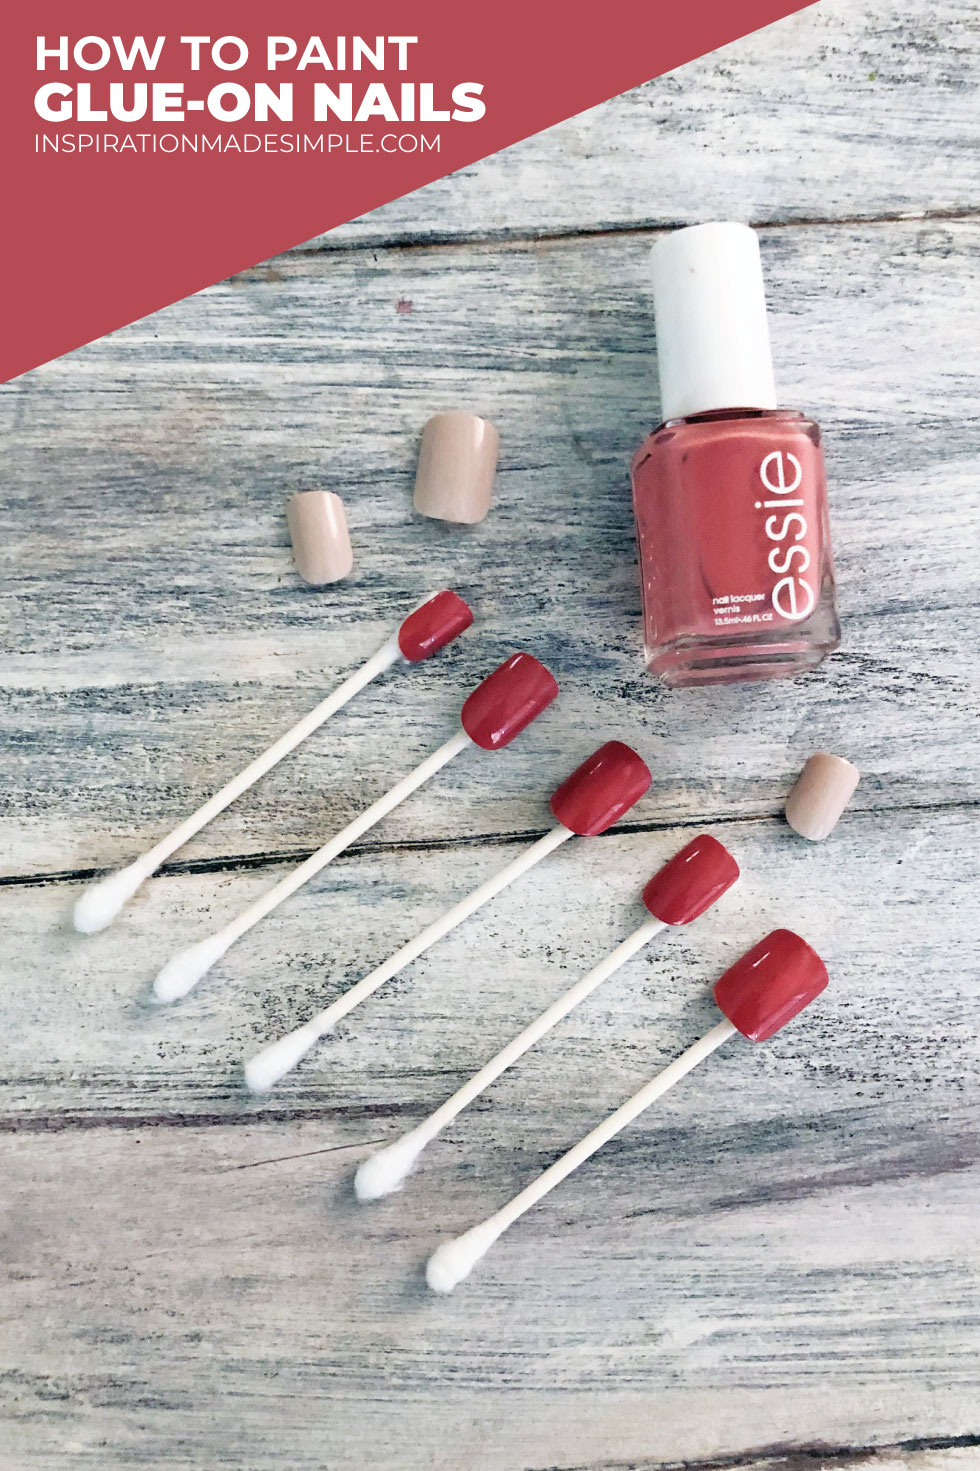 Can You Paint Fake Nails : paint, nails, Painting, Glue-On, Nails?, Inspiration, Simple